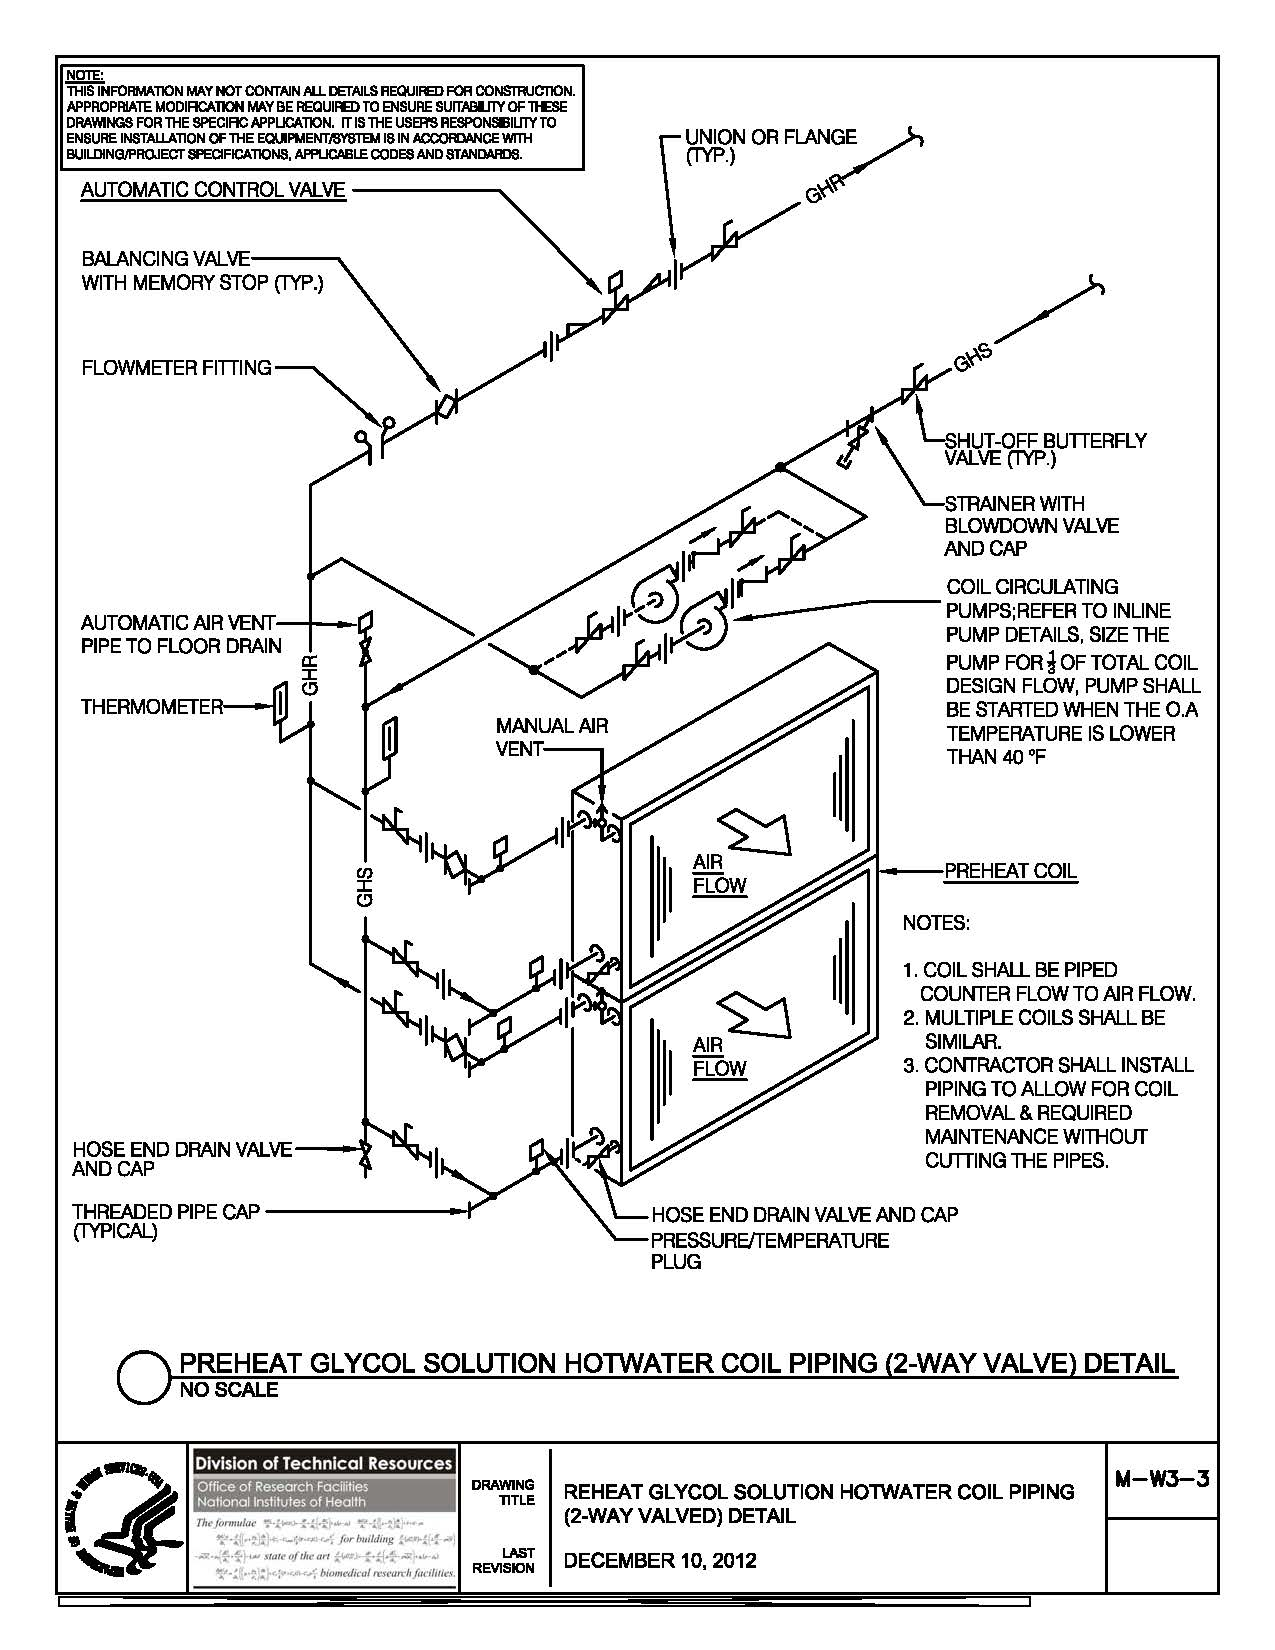 ahu residential wiring diagram html with Hot Water Boiler Piping Diagrams on Vrf Refrigeration System together with Drip Pan Under The Attic Installed Air Conditioning Coil furthermore 11791291 Hvac Schematic Drawings Services Hvac System Schematics At Low Cost together with Air Handler Symbol moreover Goodman Ac Wiring Diagram.